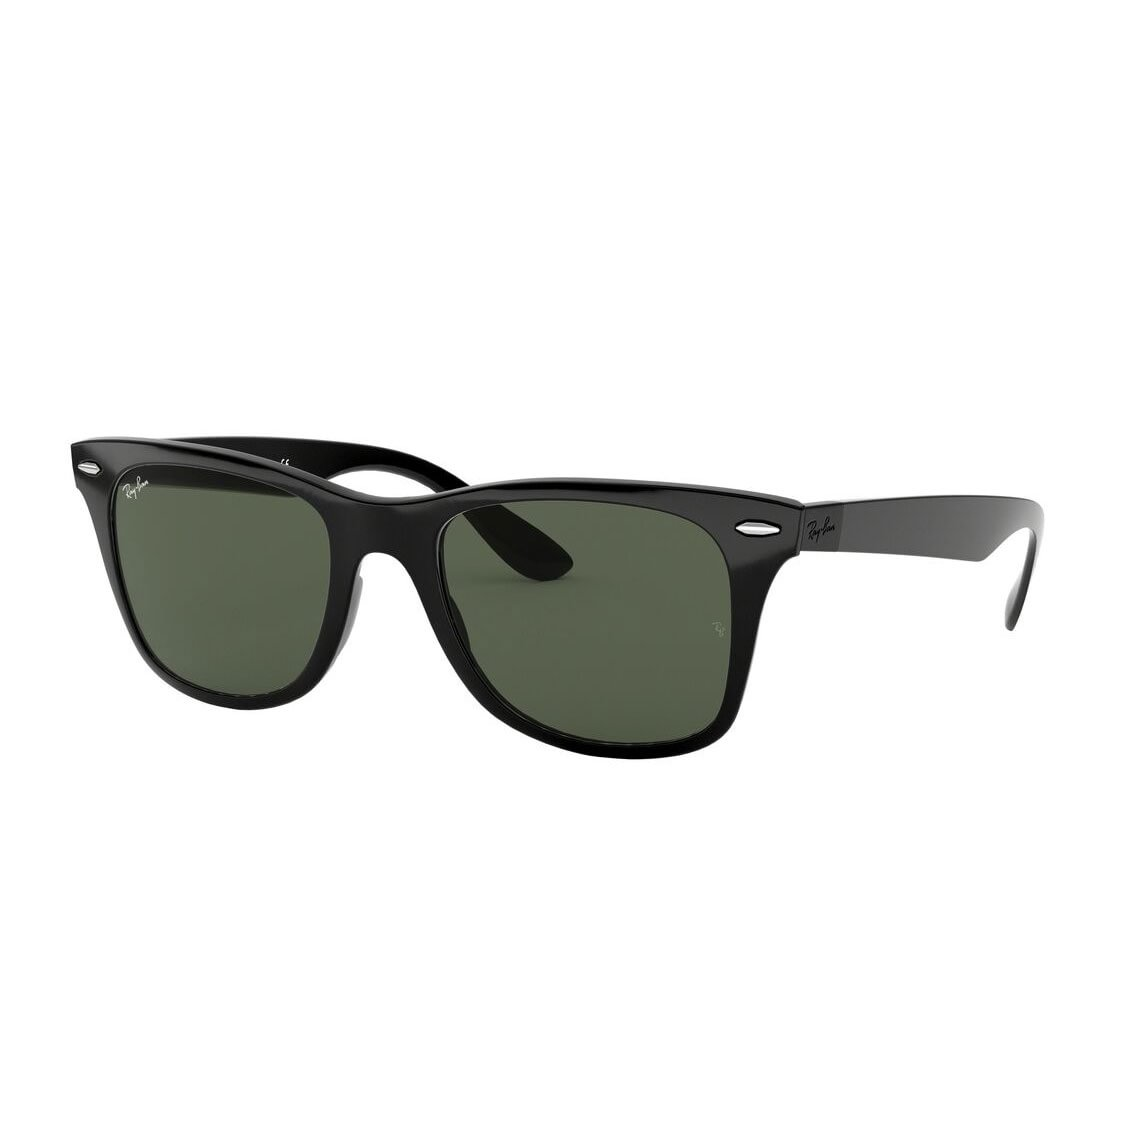 Ray-Ban Wayfarer Liteforce RB4195 601/71 52